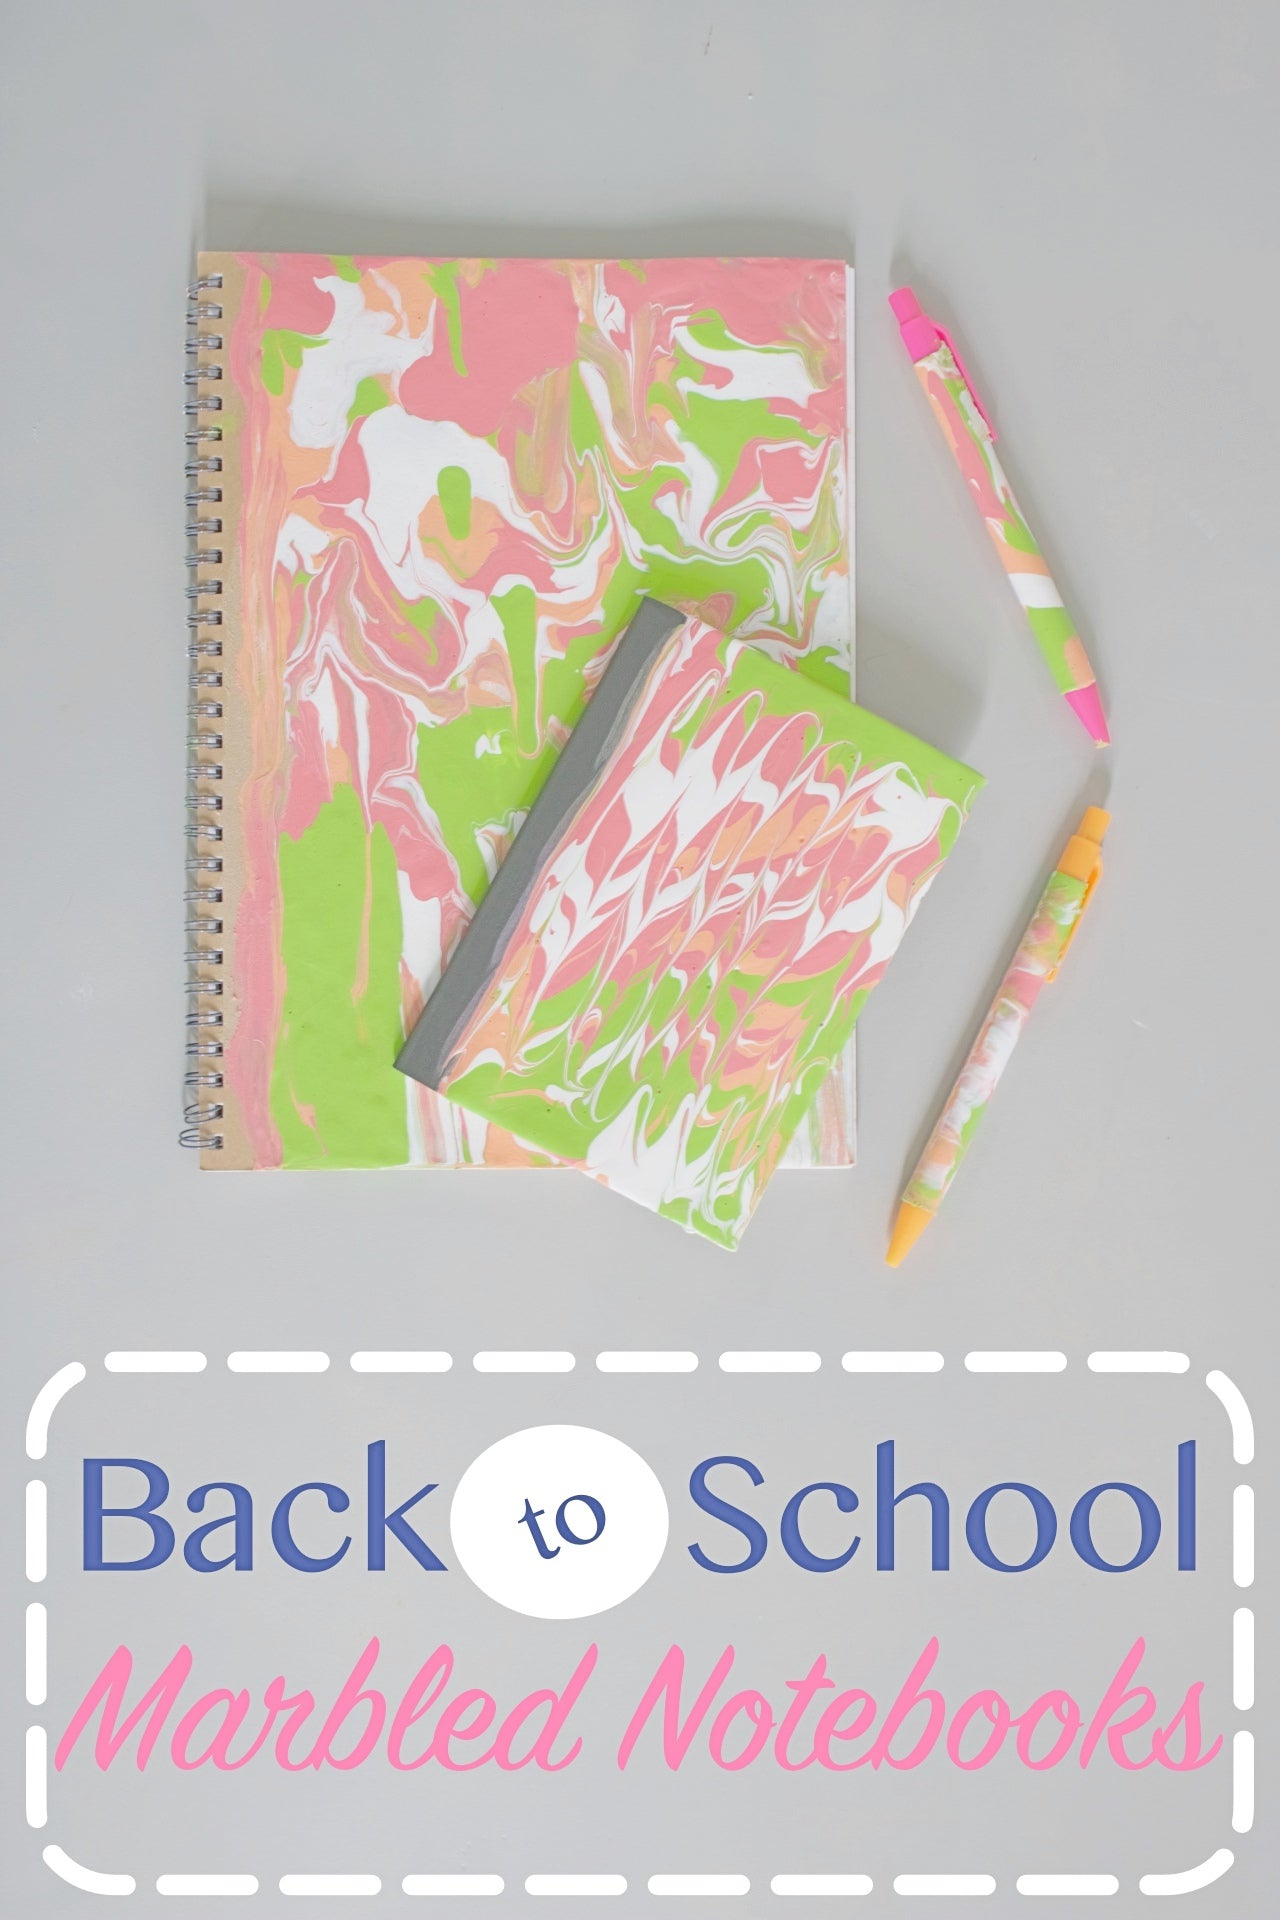 Back to School Marbled Notebooks